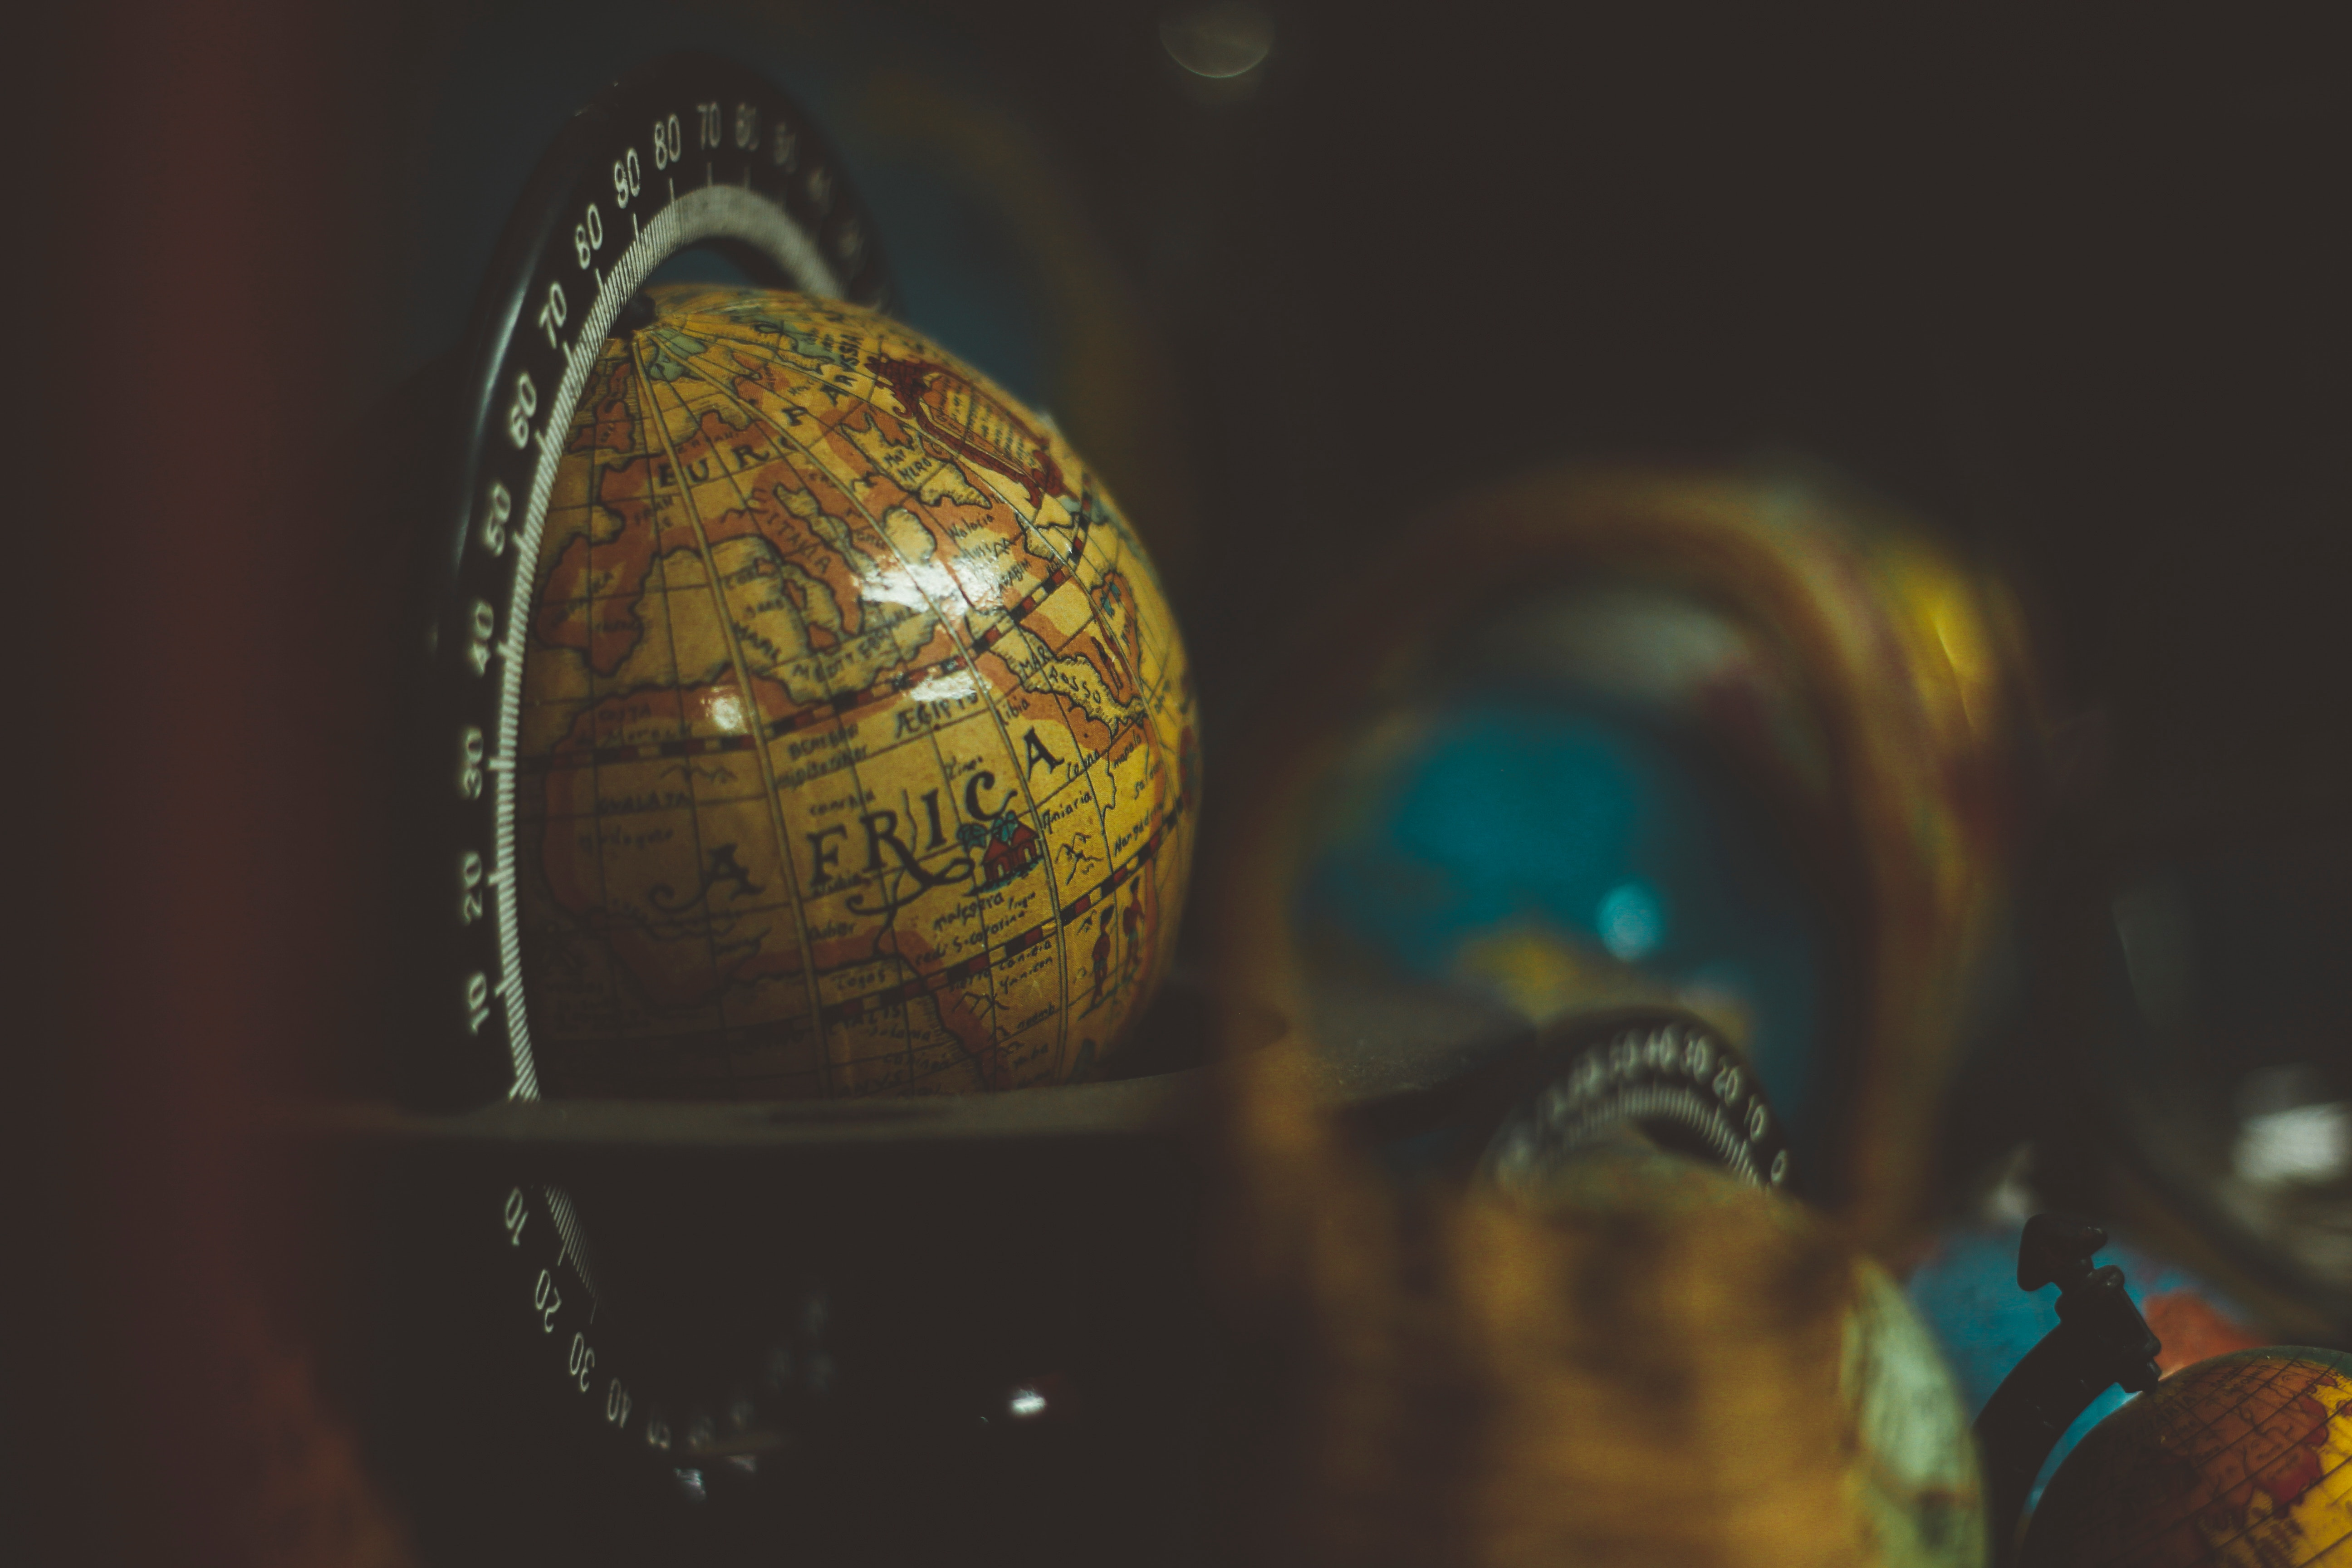 Photo of Africa on a globe with other globes blurred in the background